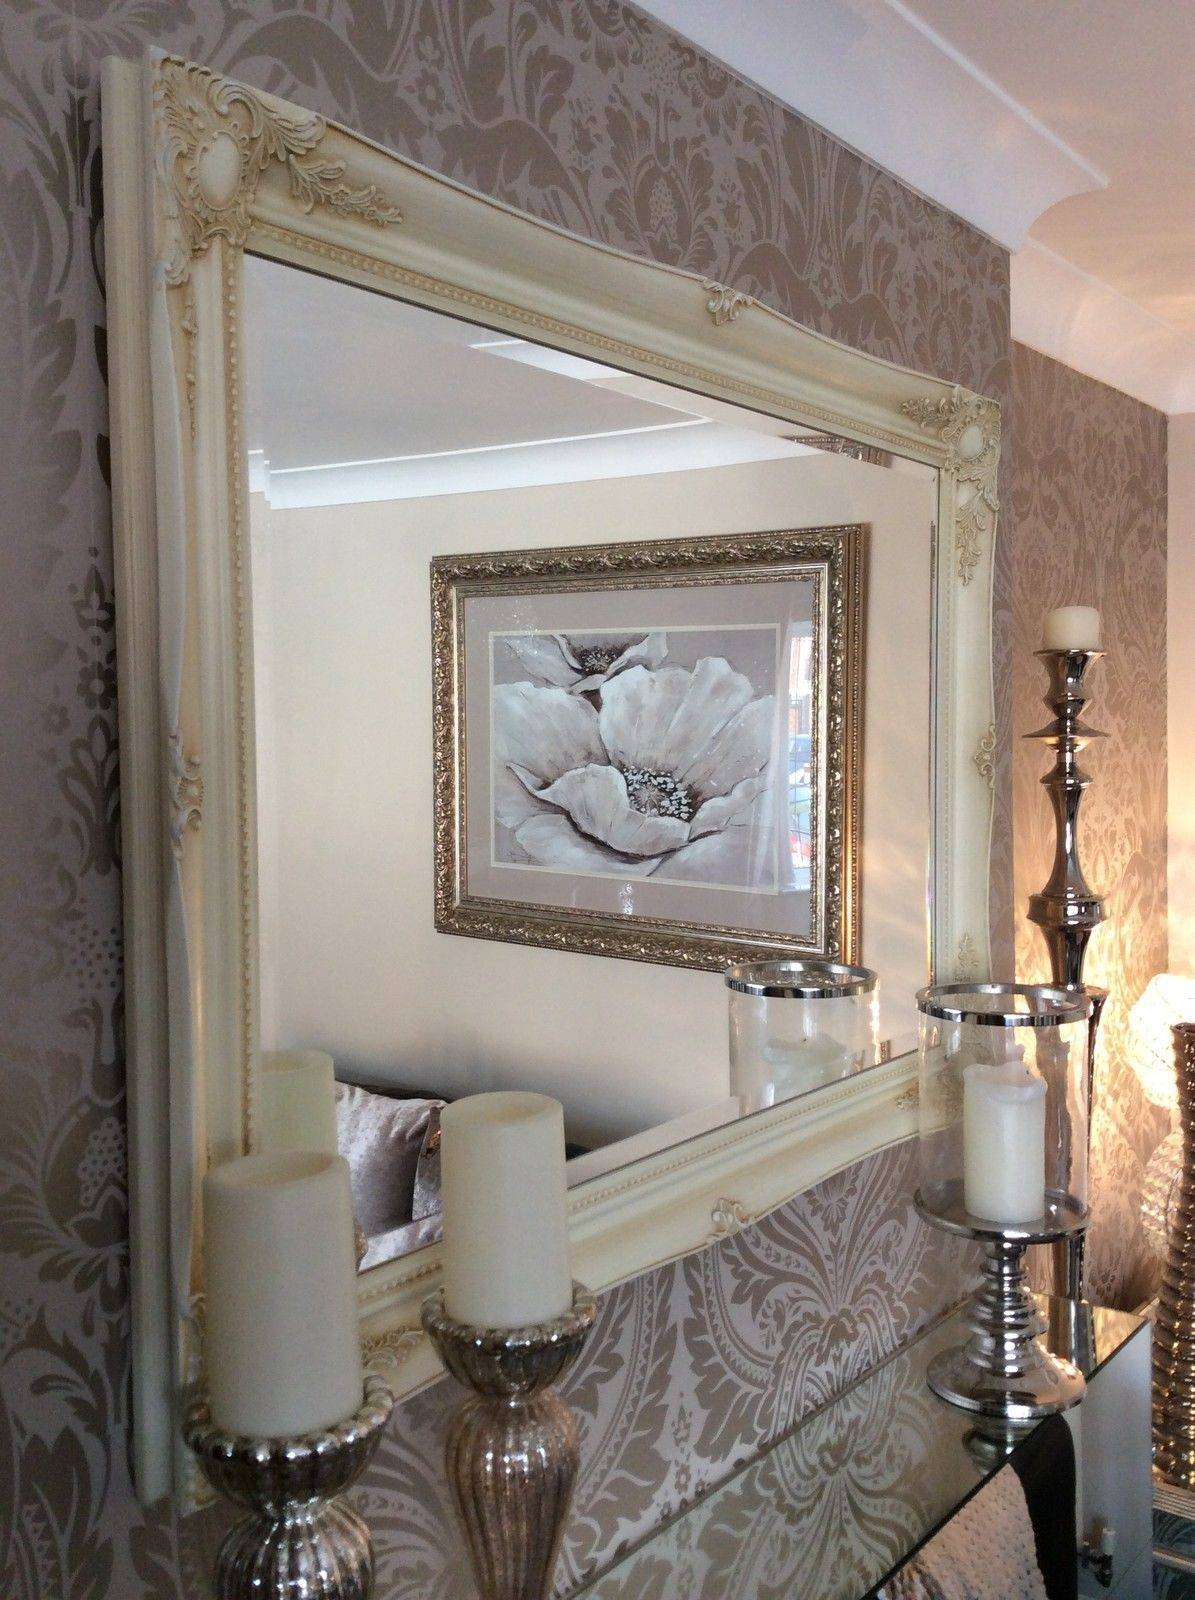 Ornate Cream Ivory Shabby Chic French Inspired Mirror - Bargain regarding French Shabby Chic Mirrors (Image 15 of 25)